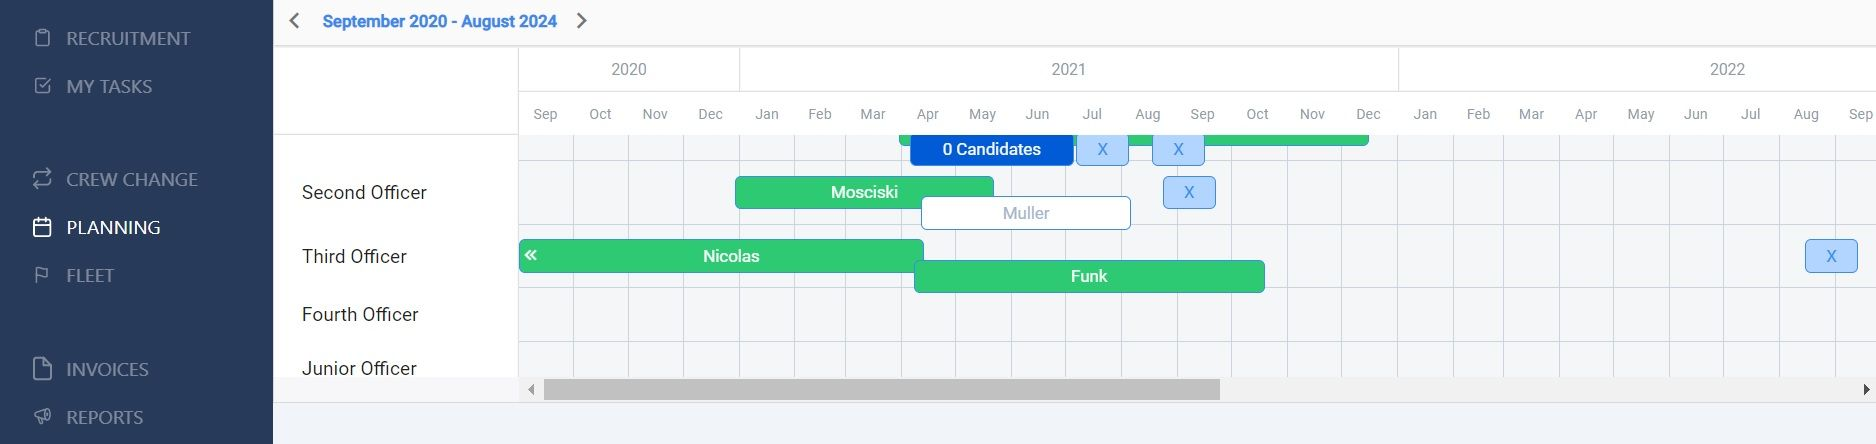 screenshot of the calendar with different seafarer scheduling